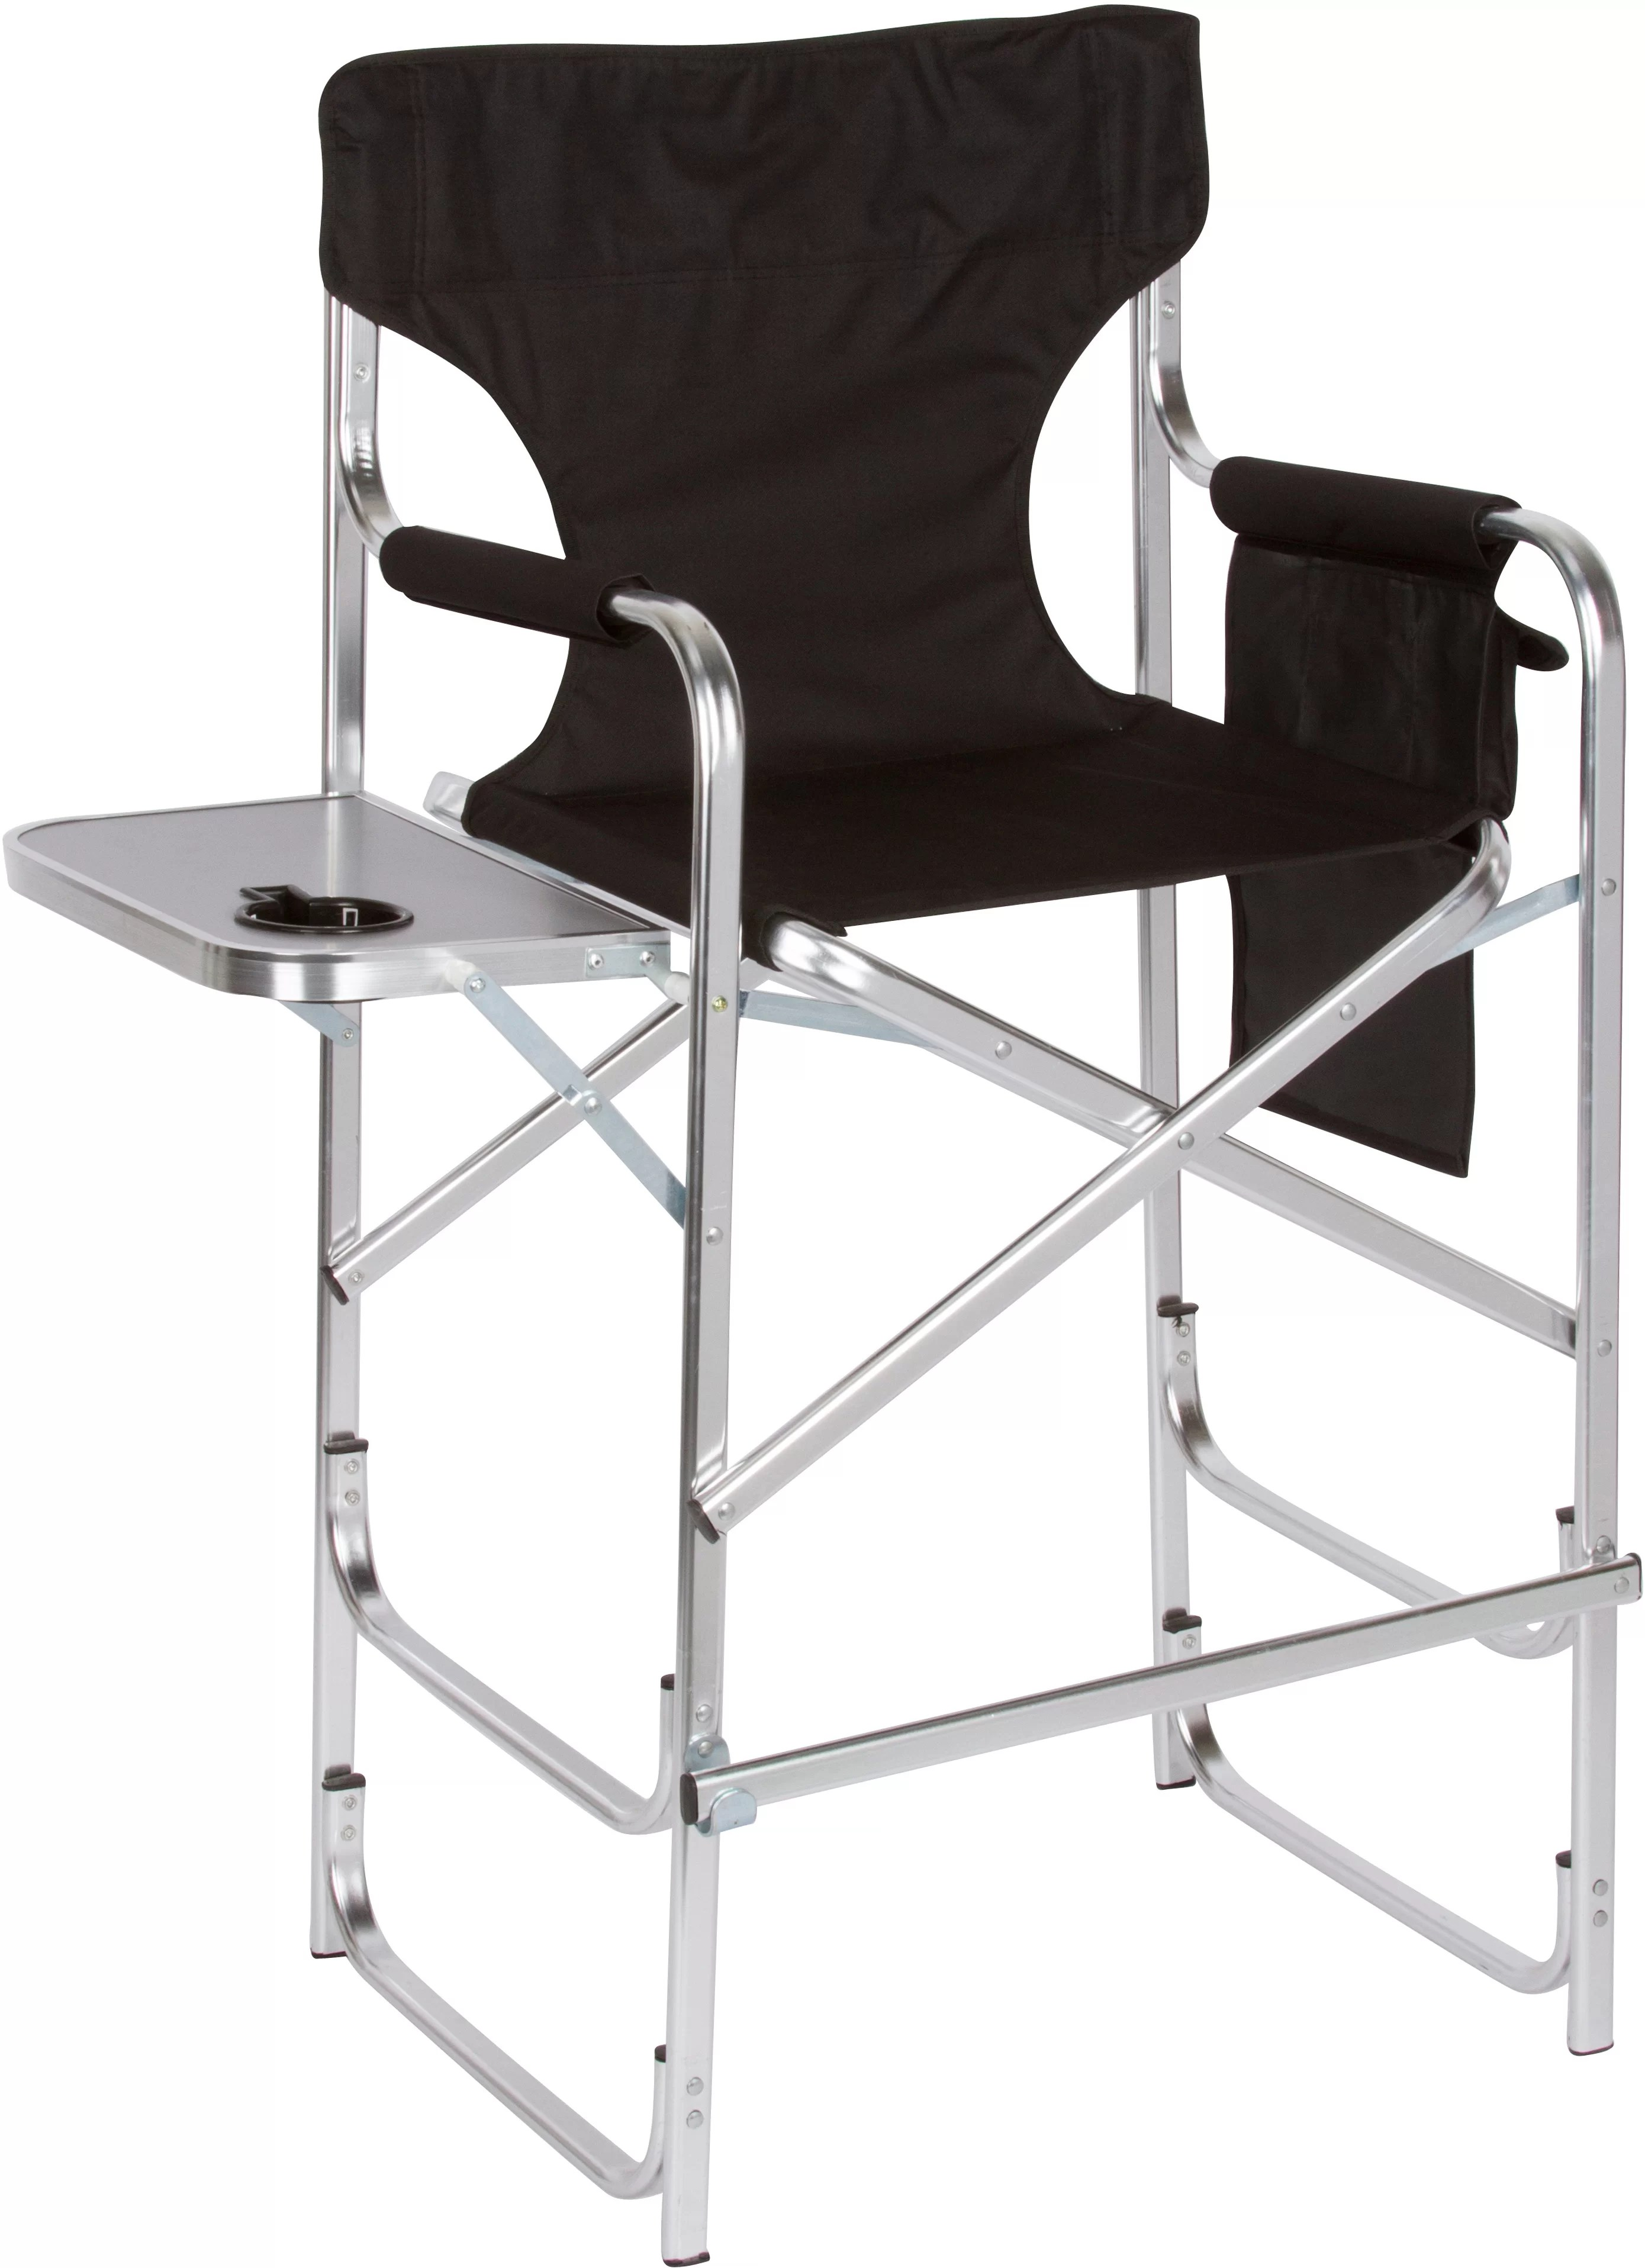 Folding Directors Chair With Side Table Folding Director Chair